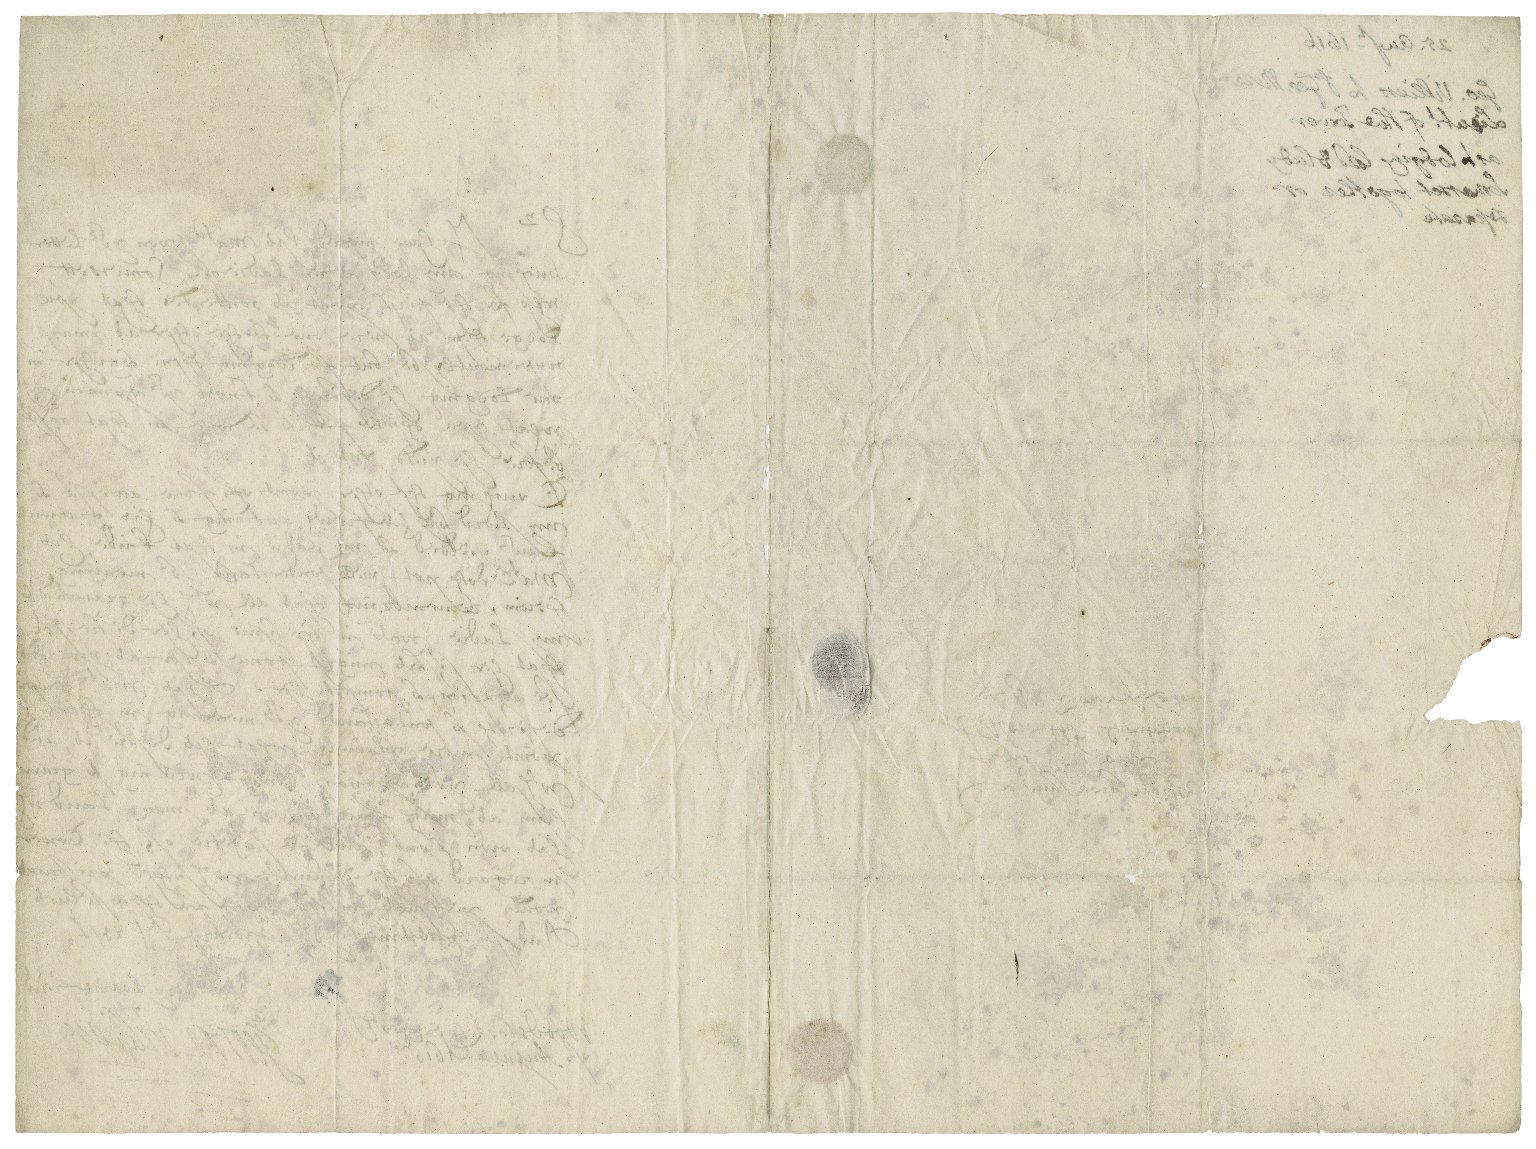 Buckingham, George Villiers, Duke of. Letter. To Sir George More. Woodstock.